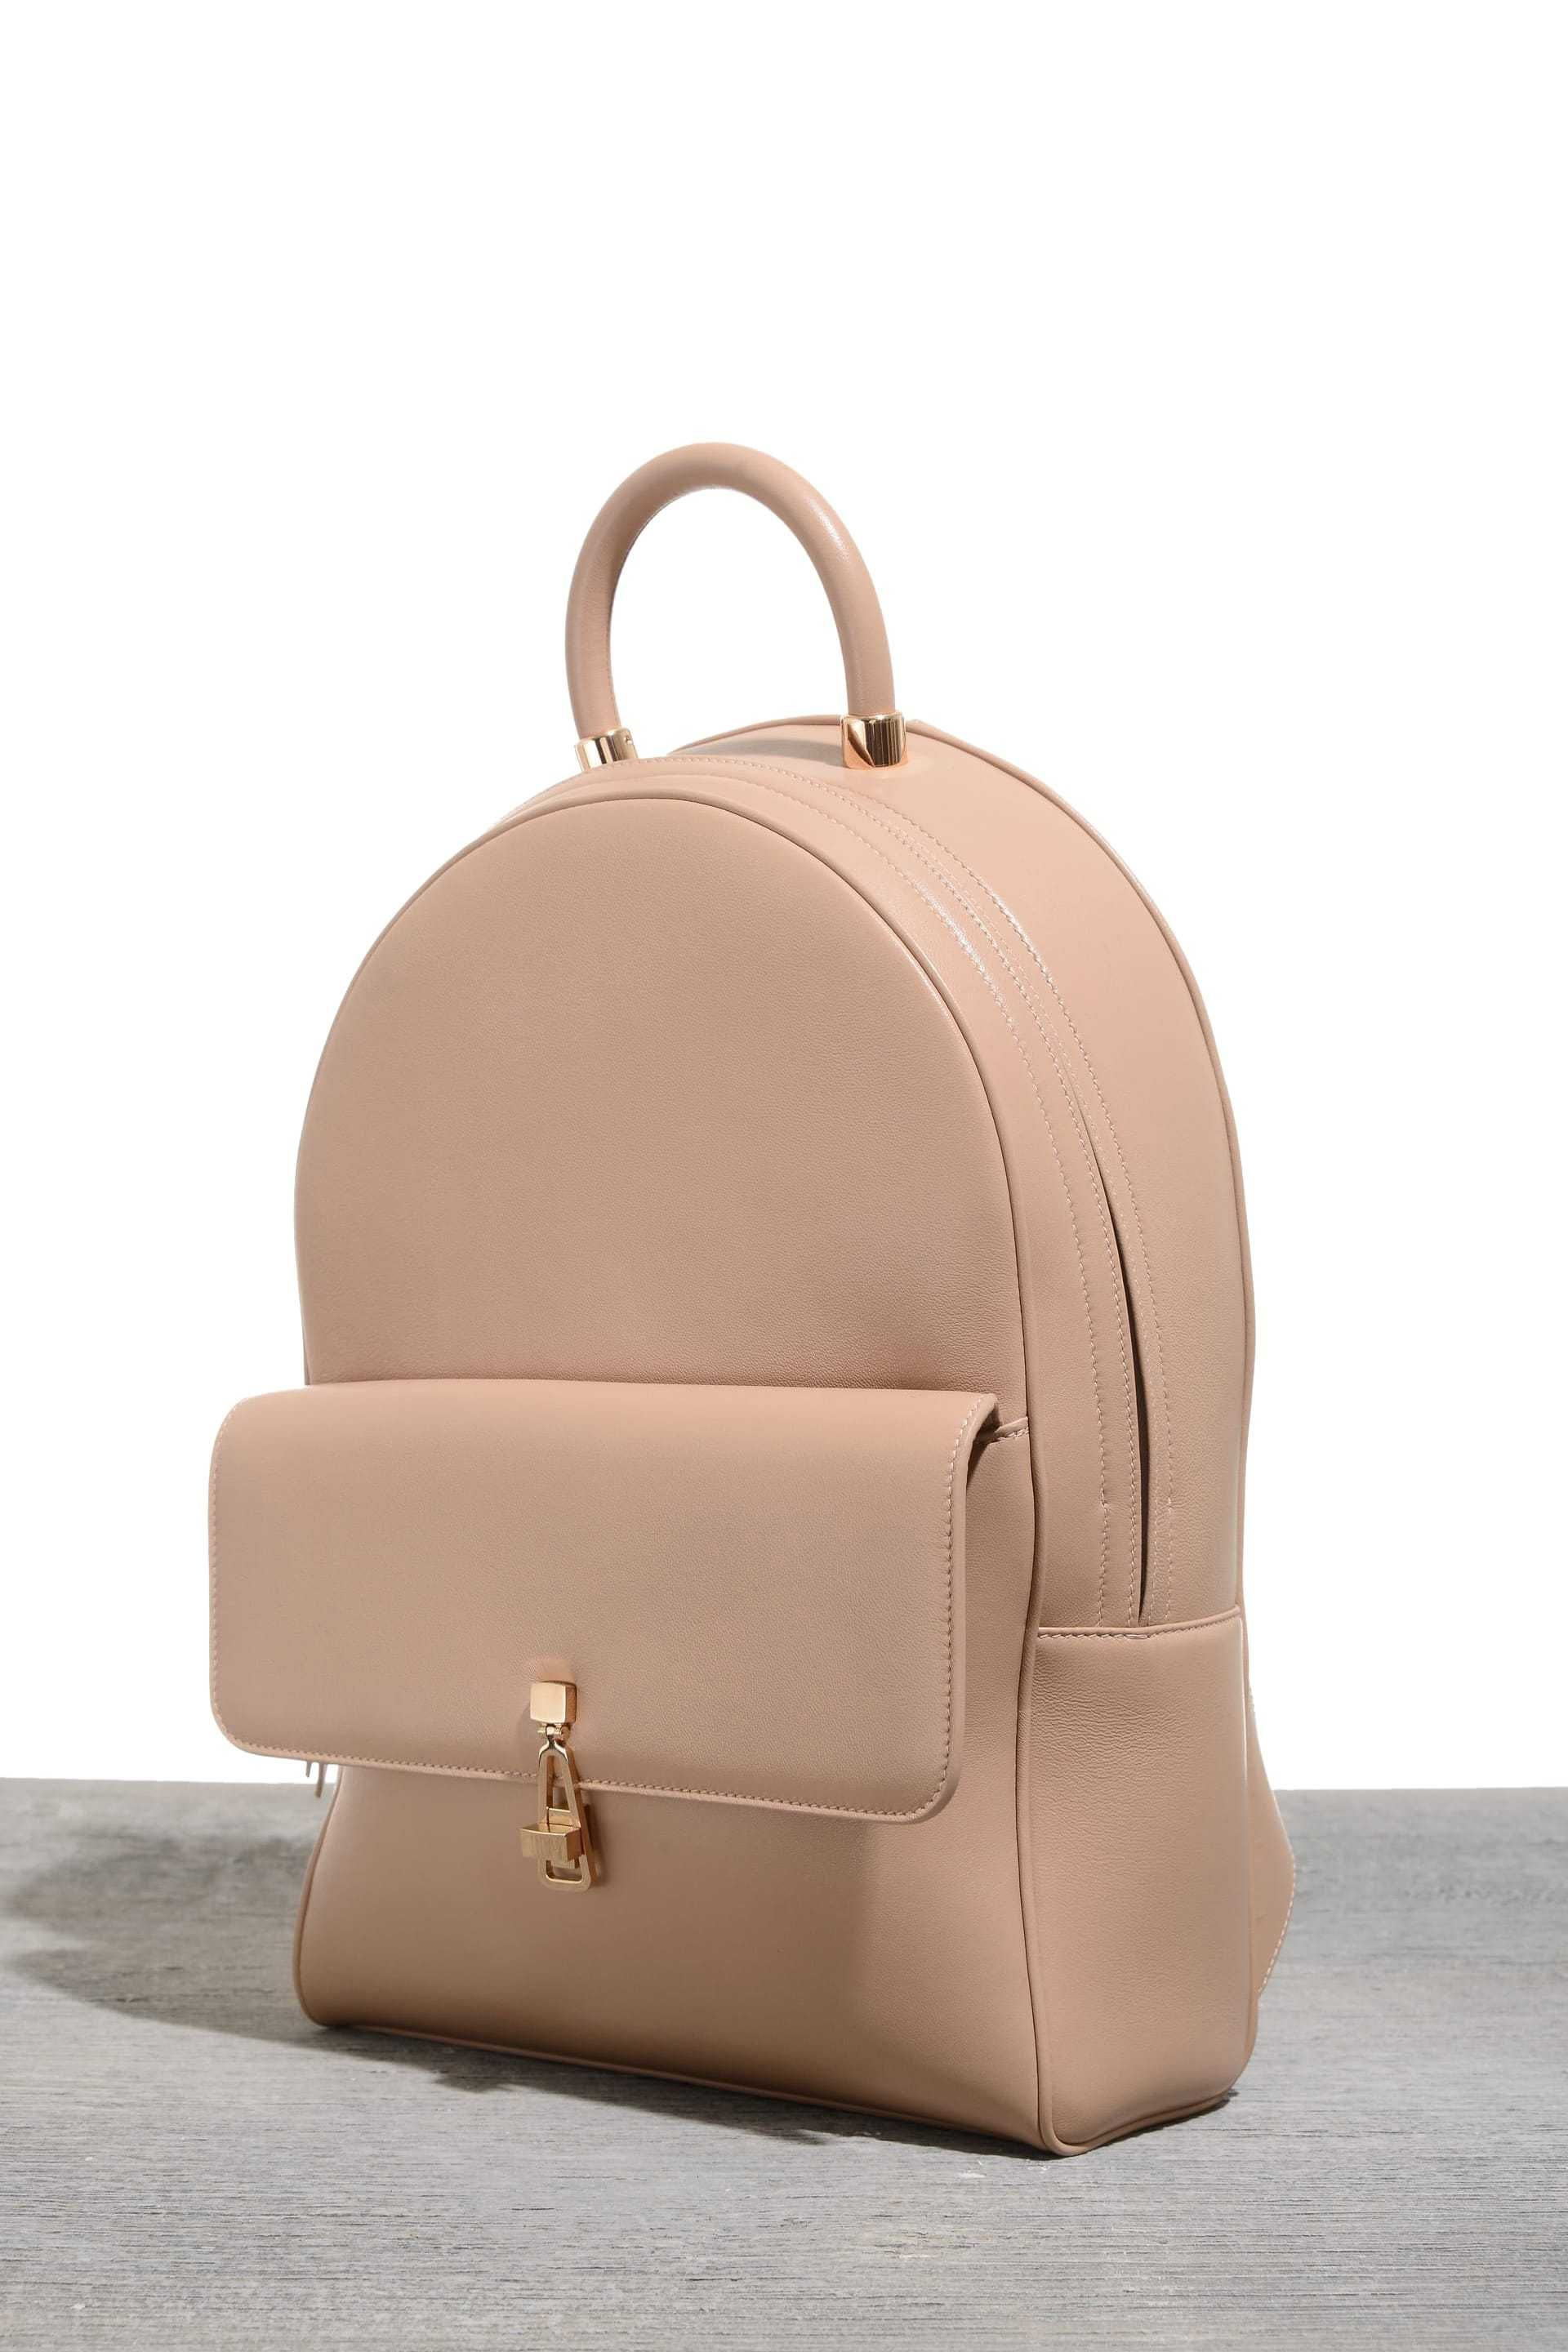 afebba471221ee Calf Leather Bag with Custom Made Rose Gold Hardware | Gabriela Hearst  Online Store - Worldwide Delivery